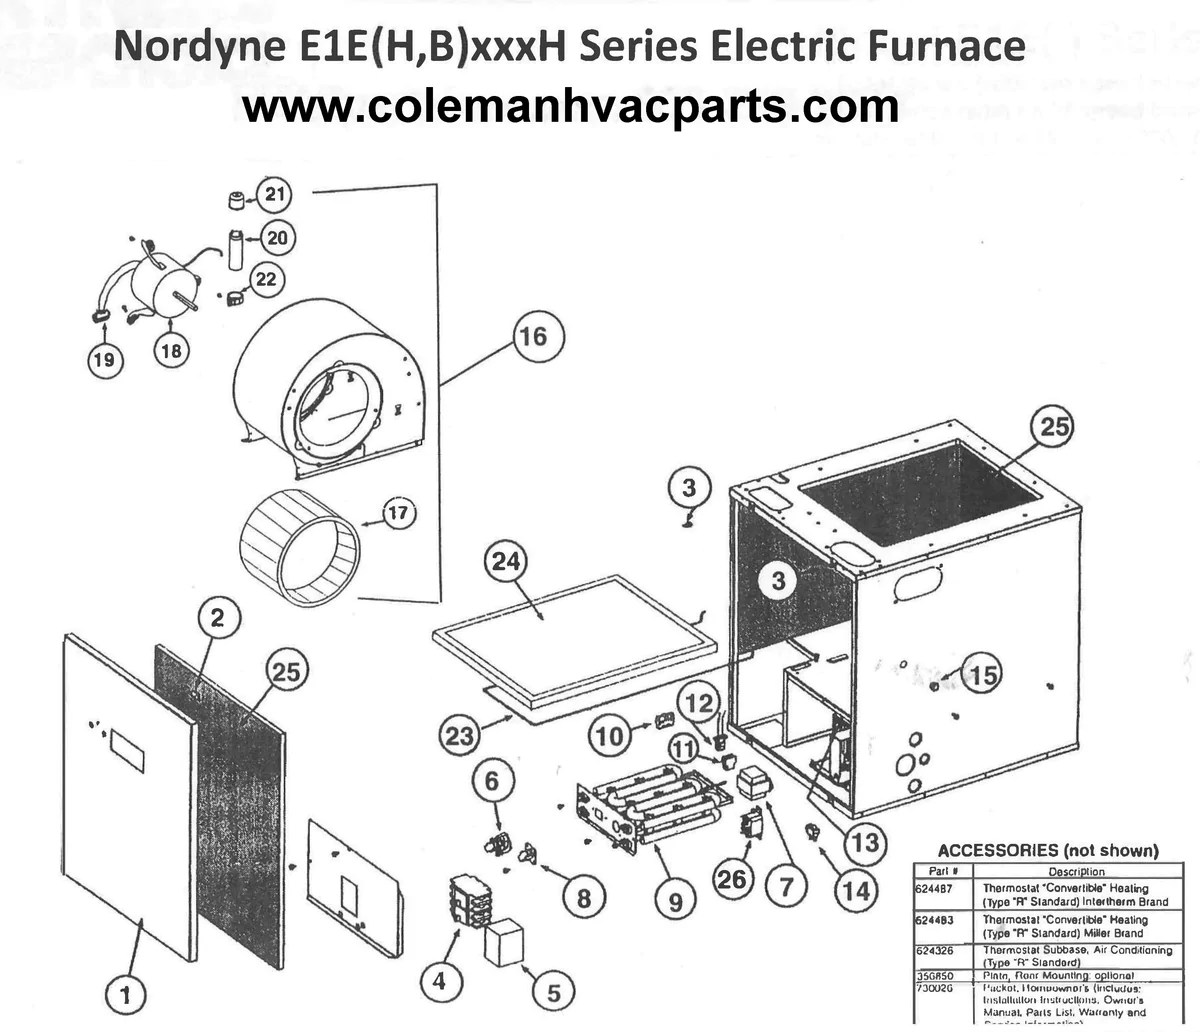 medium resolution of e1eh015h nordyne electric furnace parts u2013 hvacpartstoremiller central air conditioner wiring diagram 17